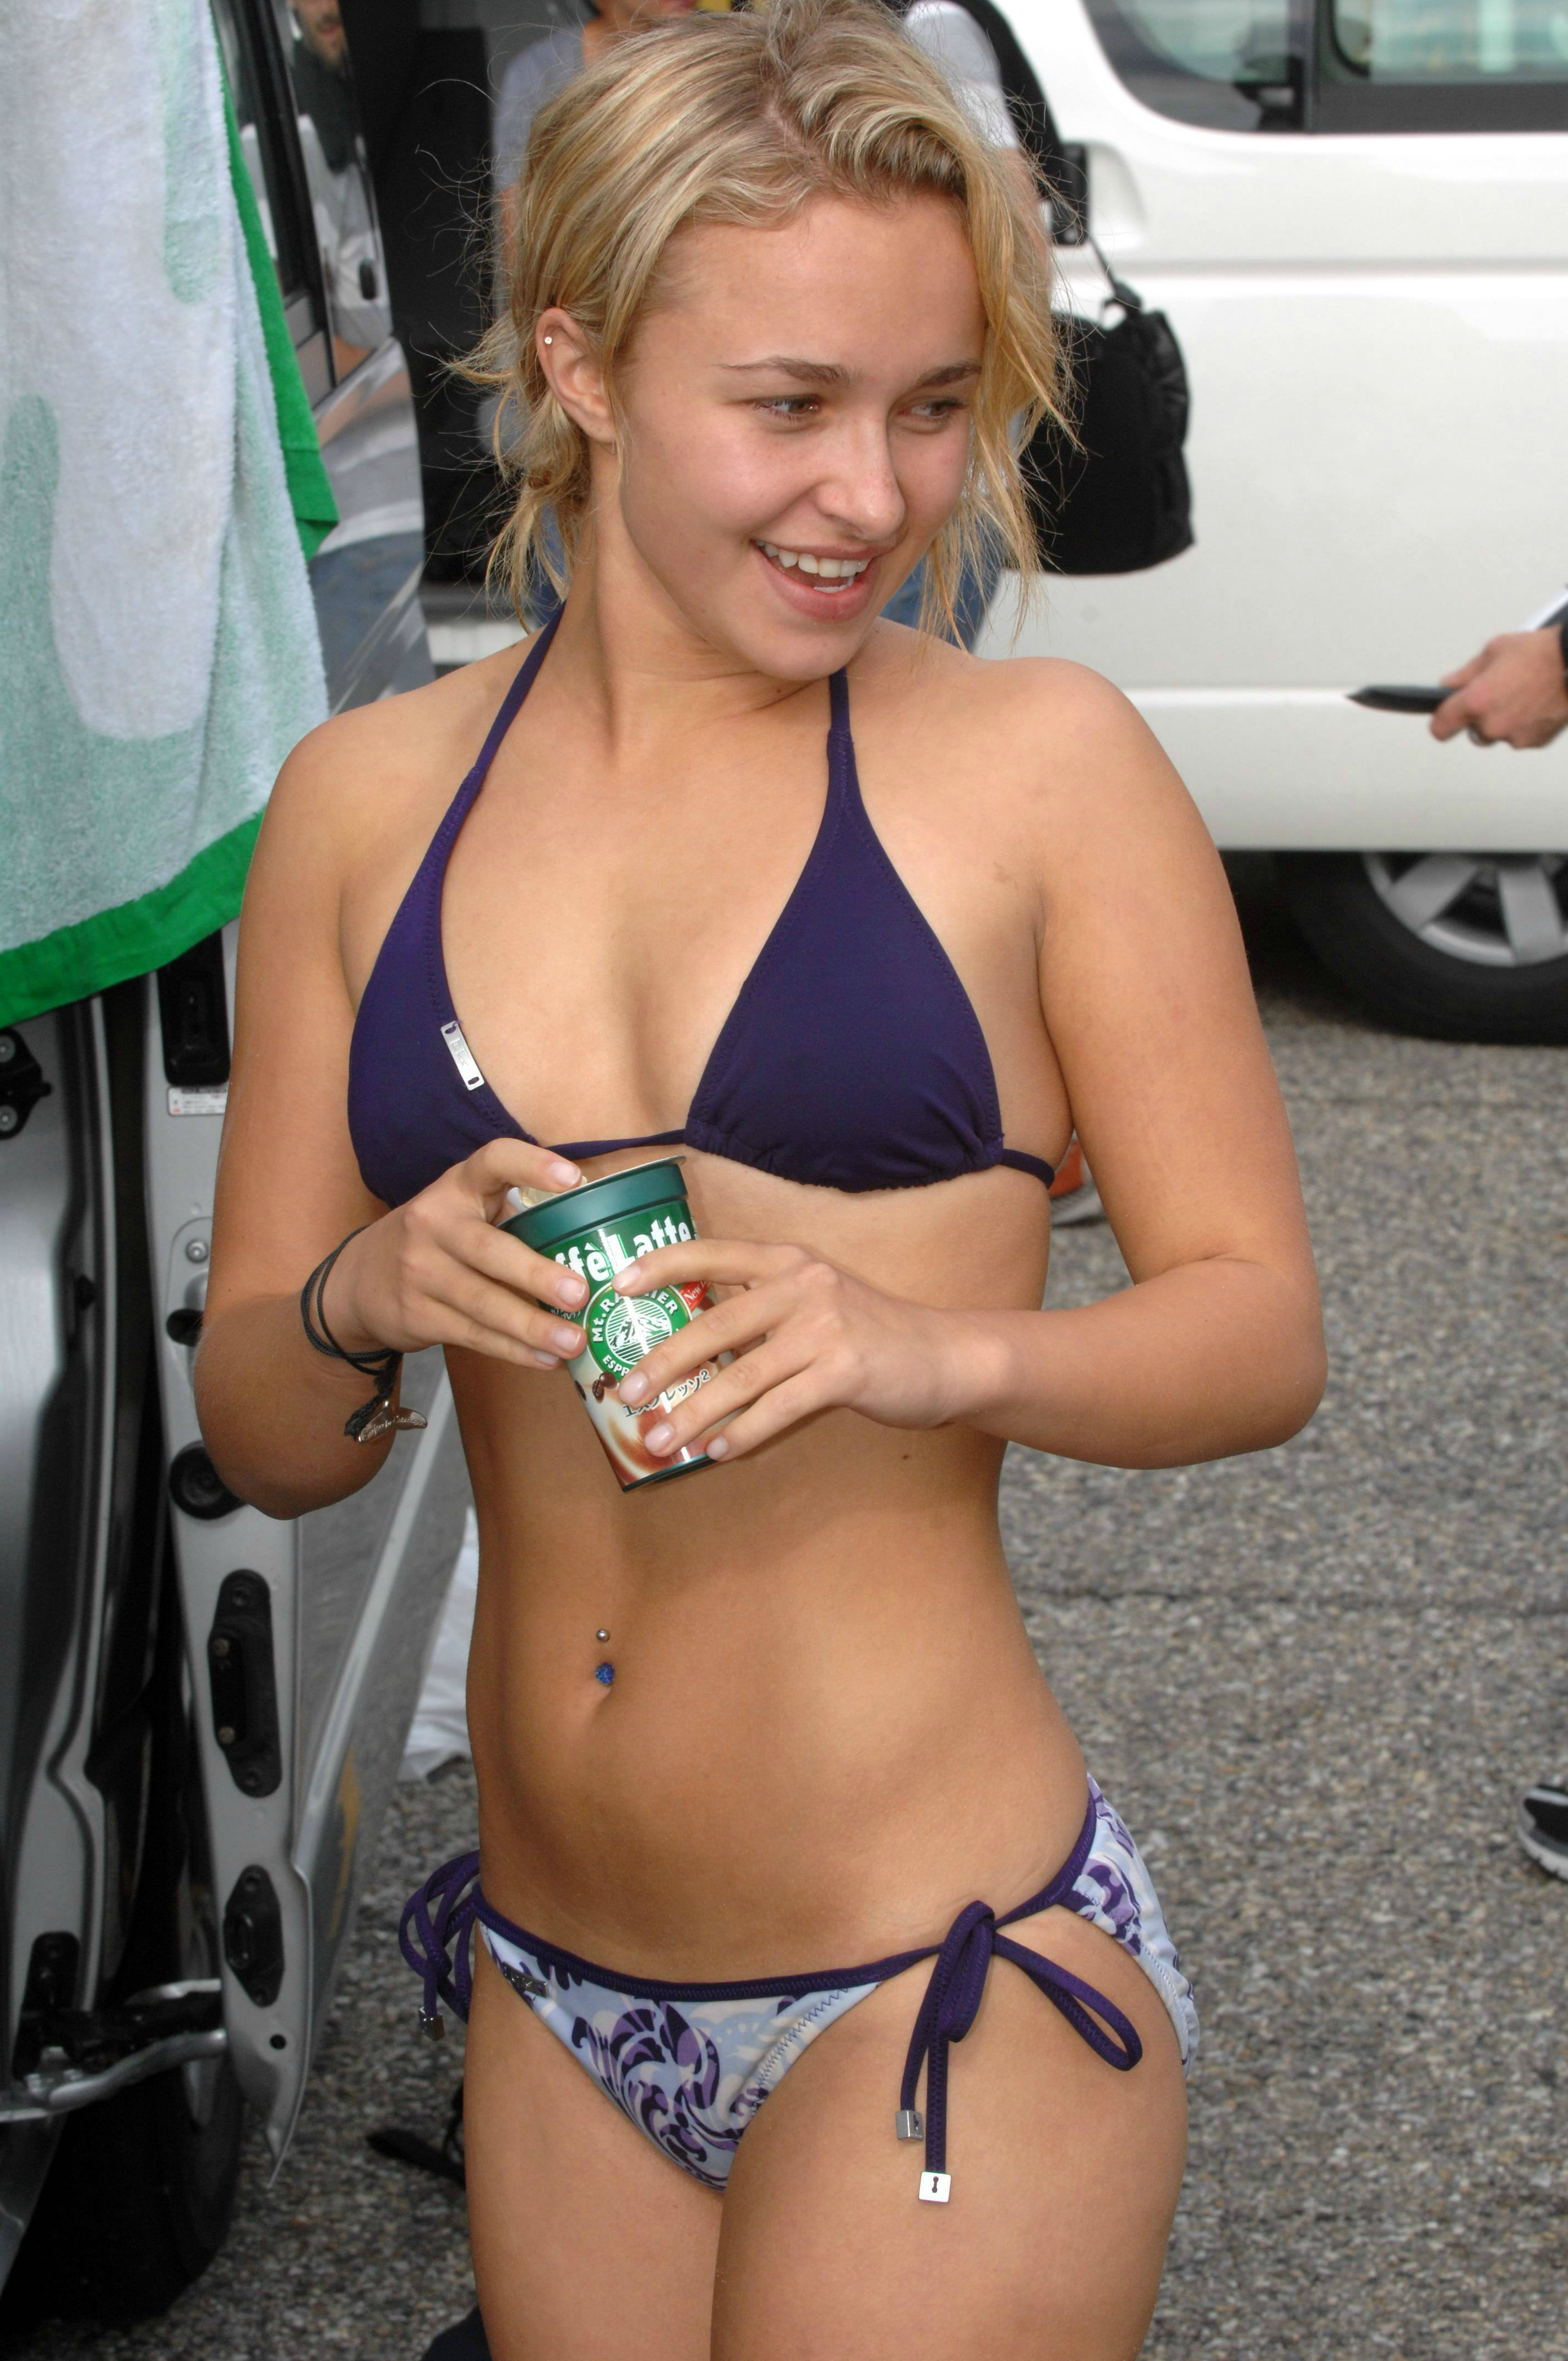 Excellent phrase hayden panettiere sex tape rapidshare that can